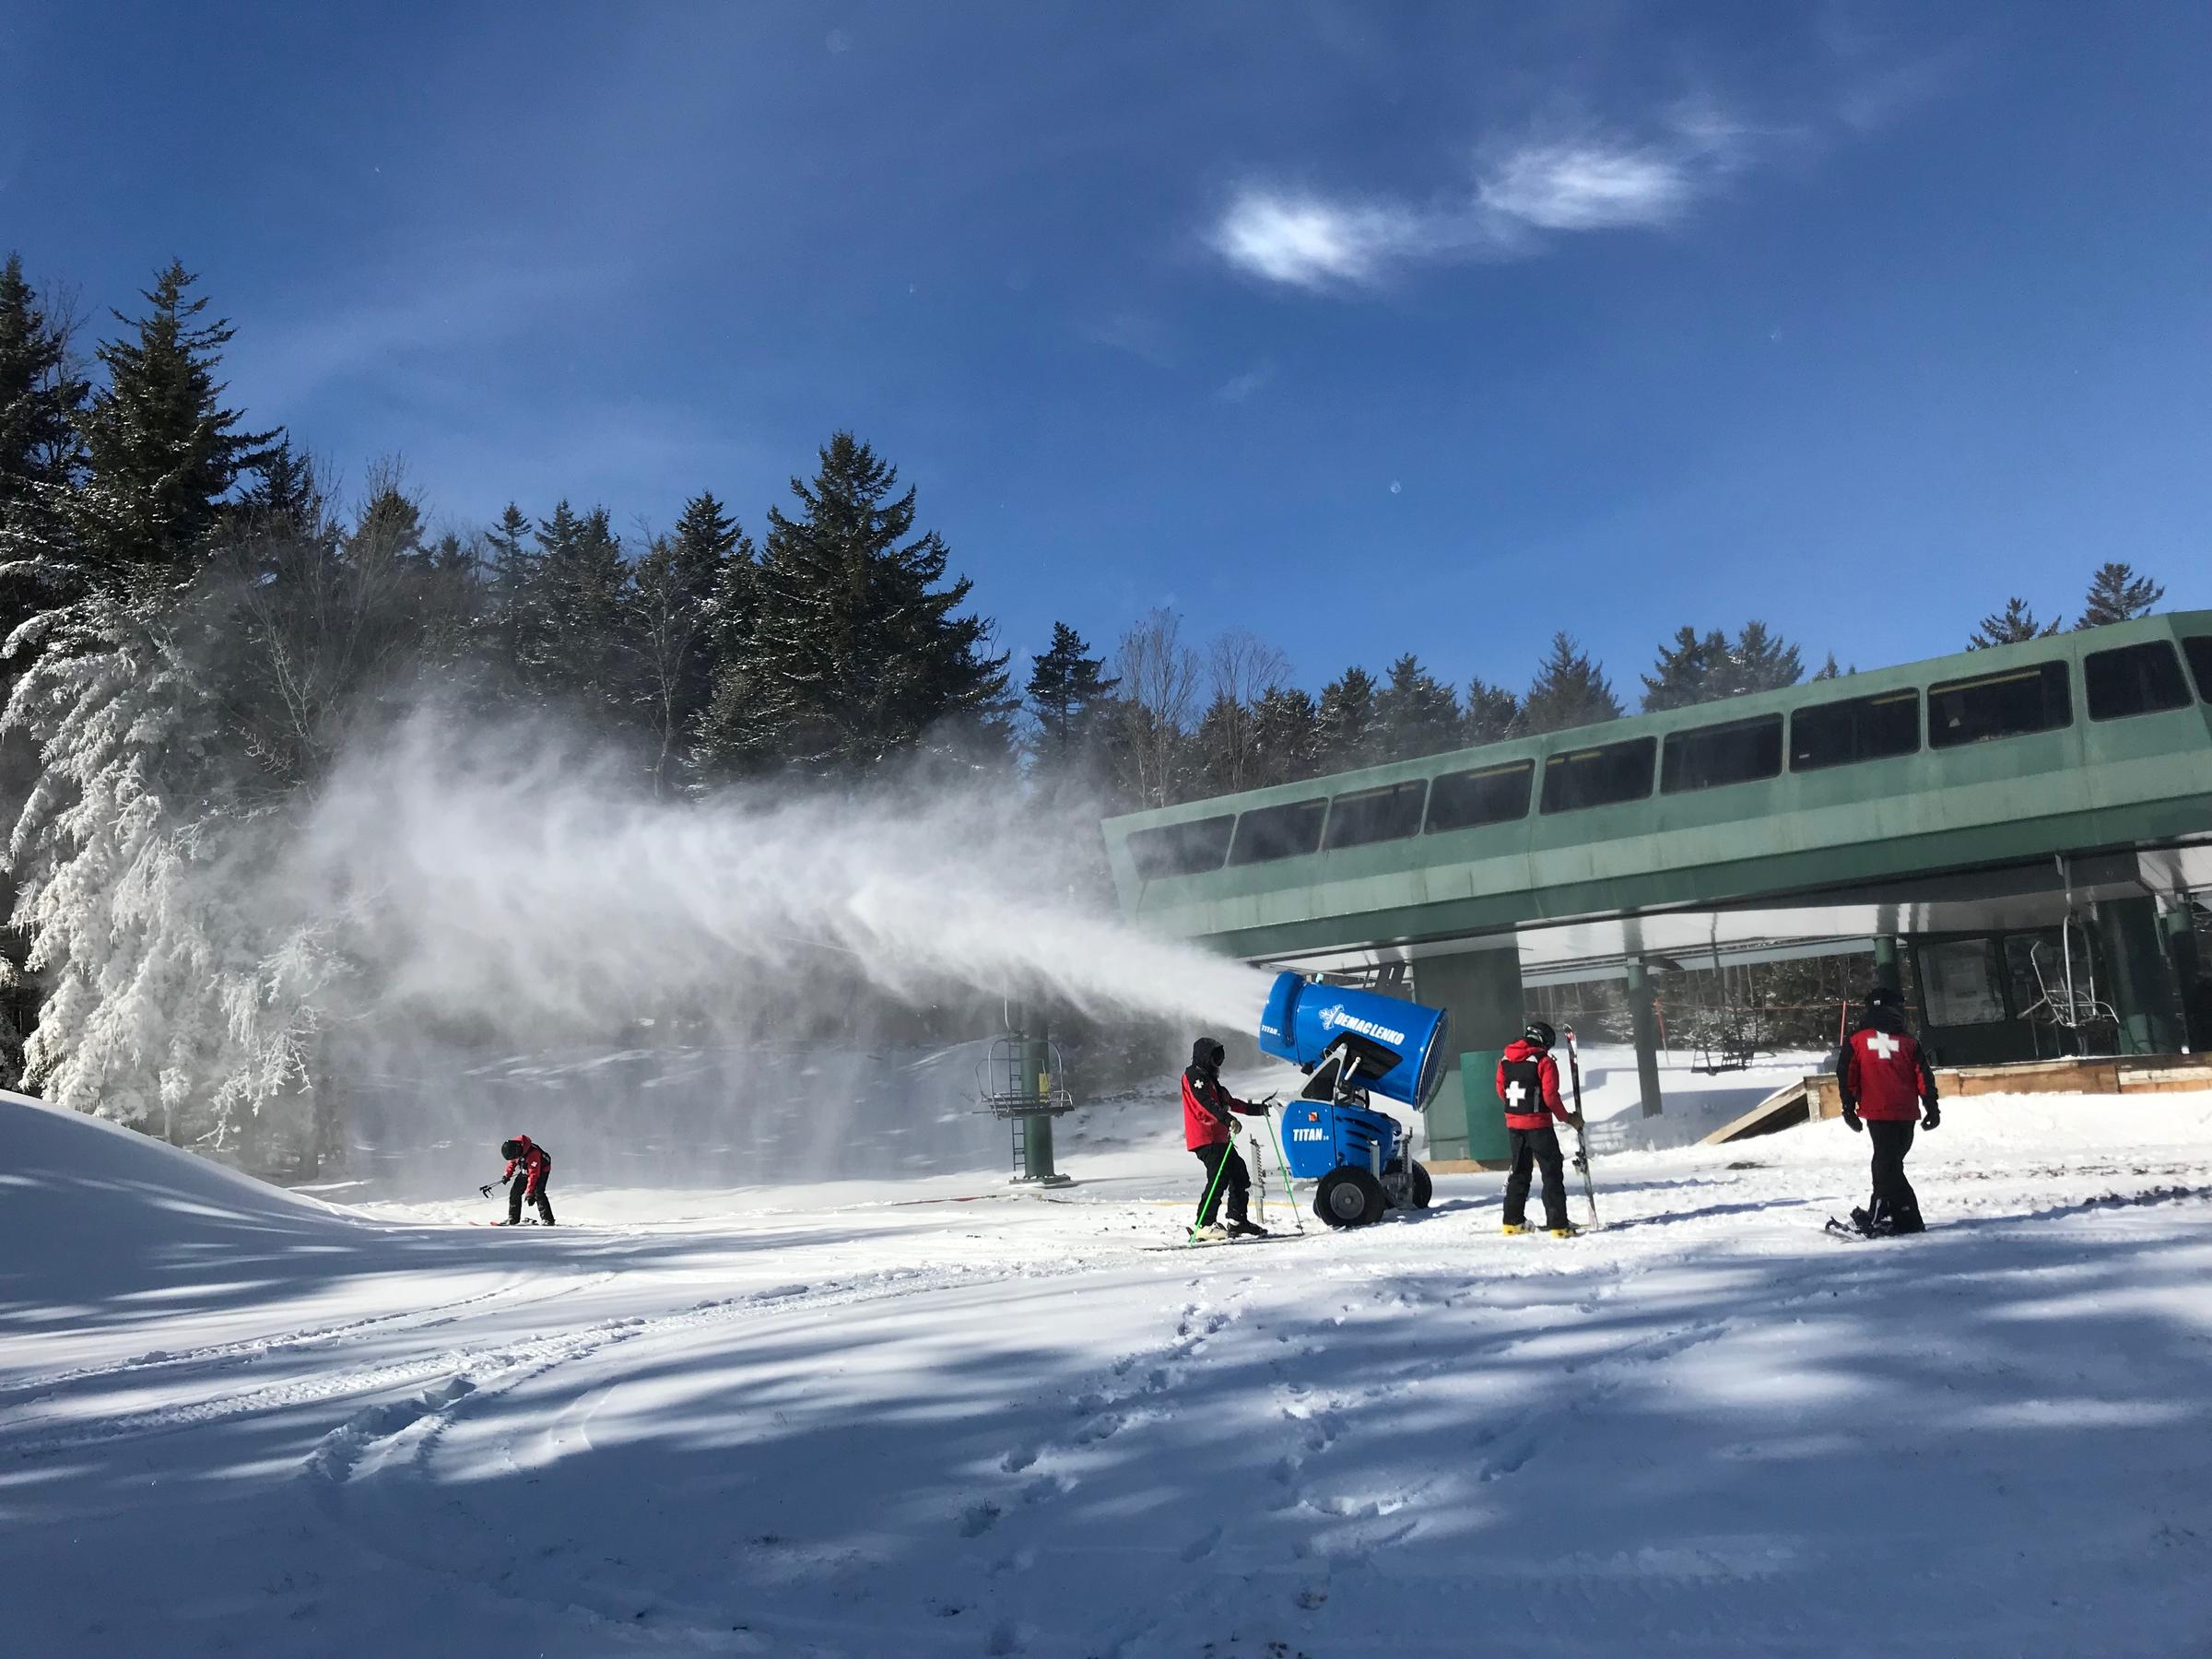 making snow in a warming world; w.va. winter sports industry